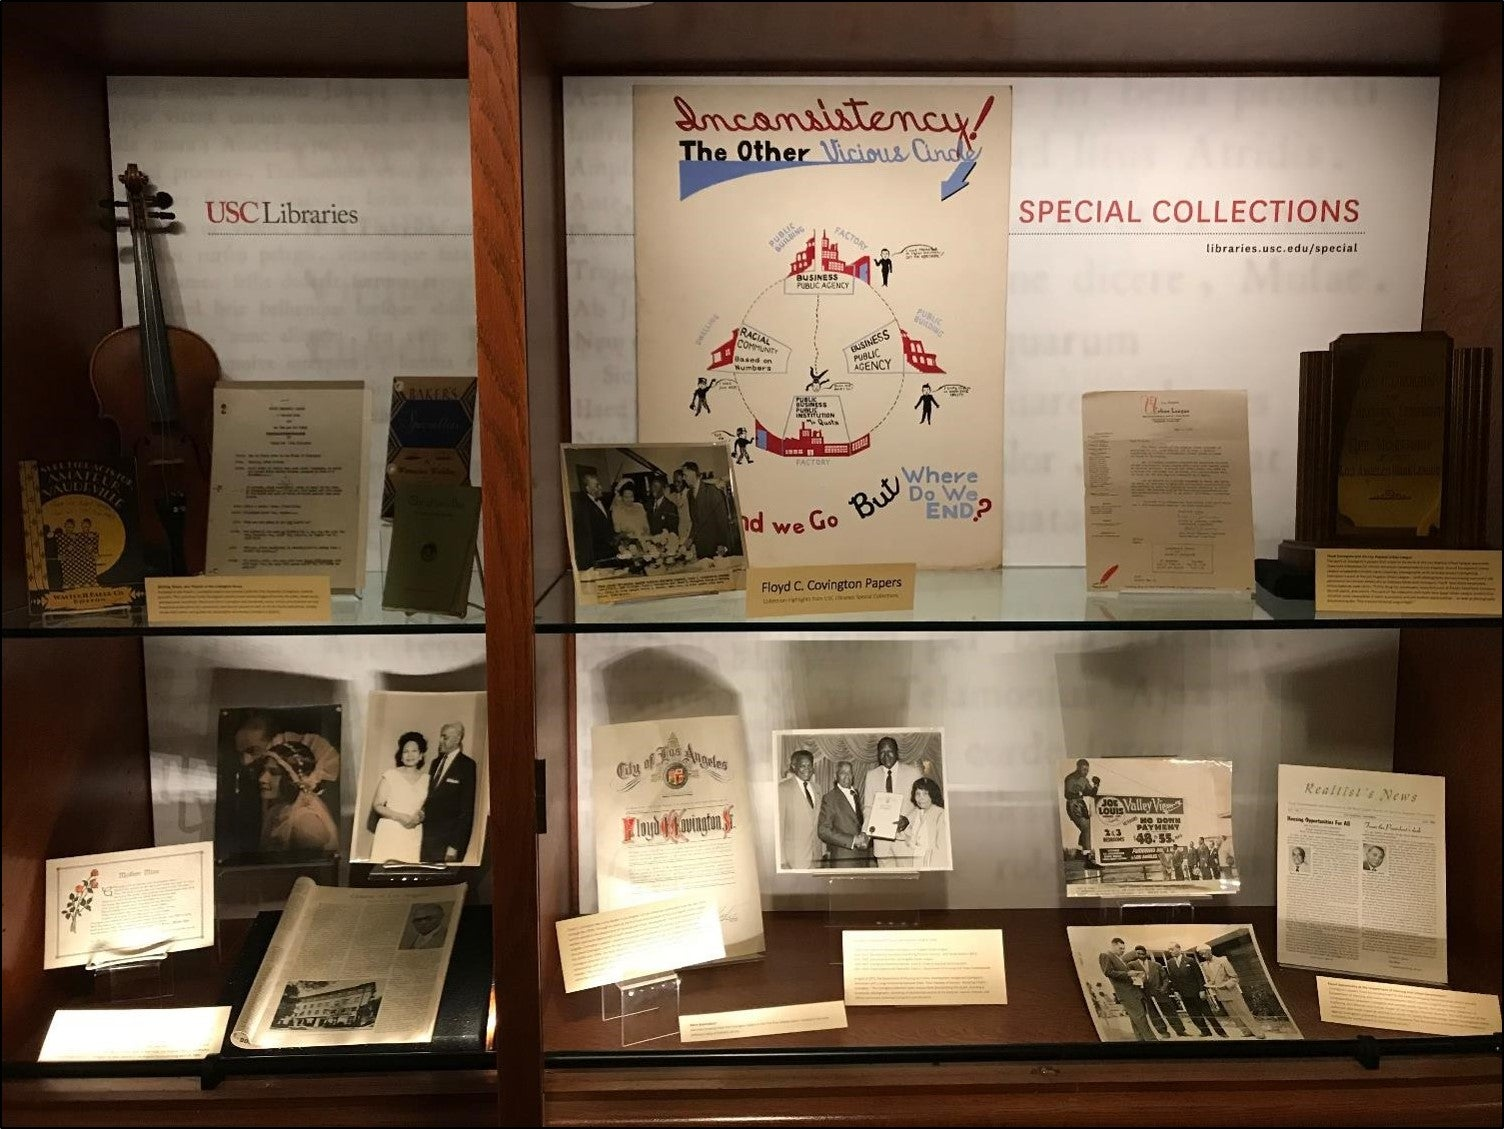 Floyd C. Covington papers - Special Collections display